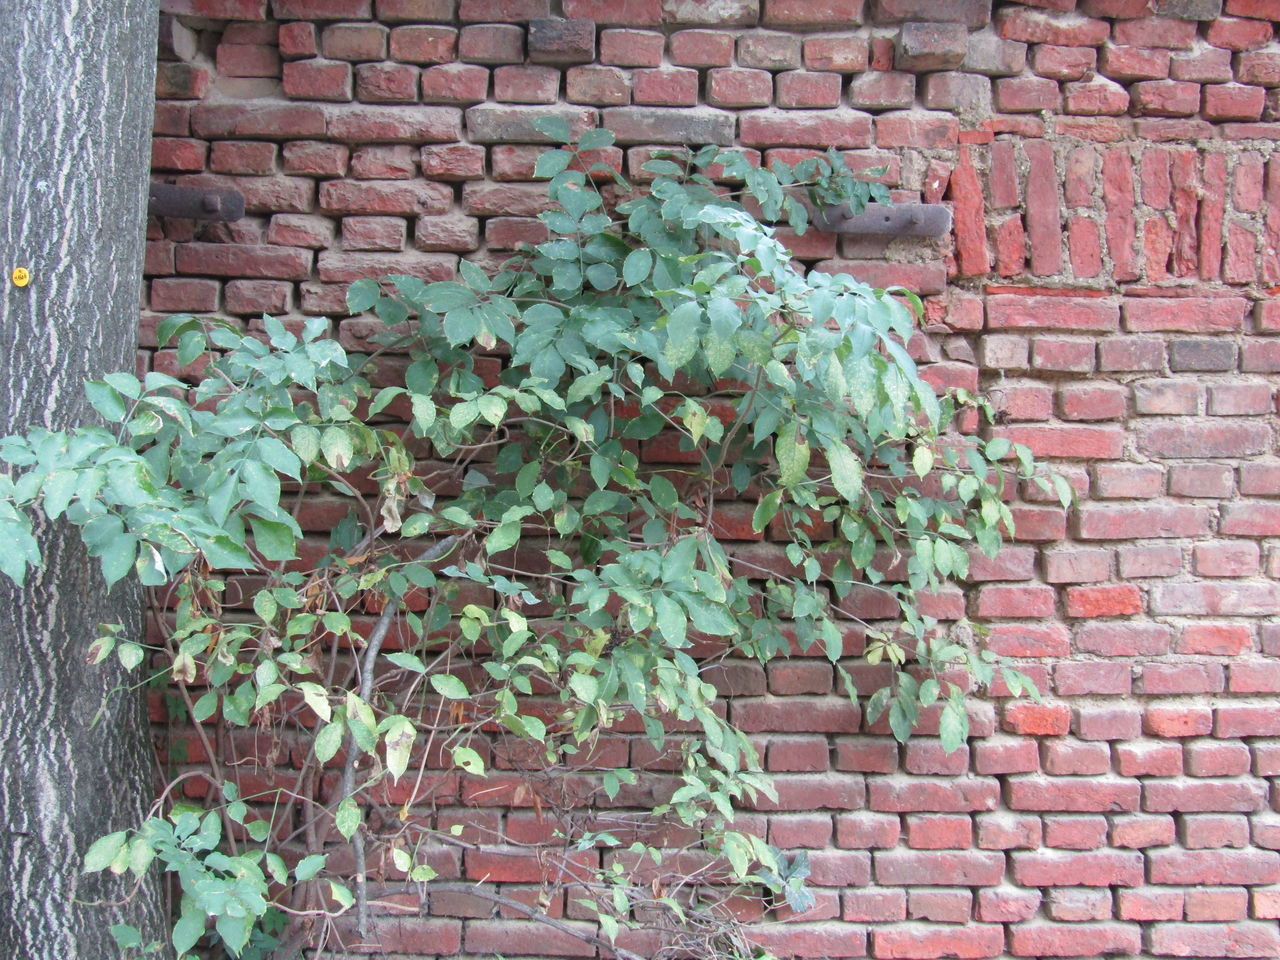 brick wall, plant, leaf, growth, ivy, green color, outdoors, no people, day, architecture, nature, built structure